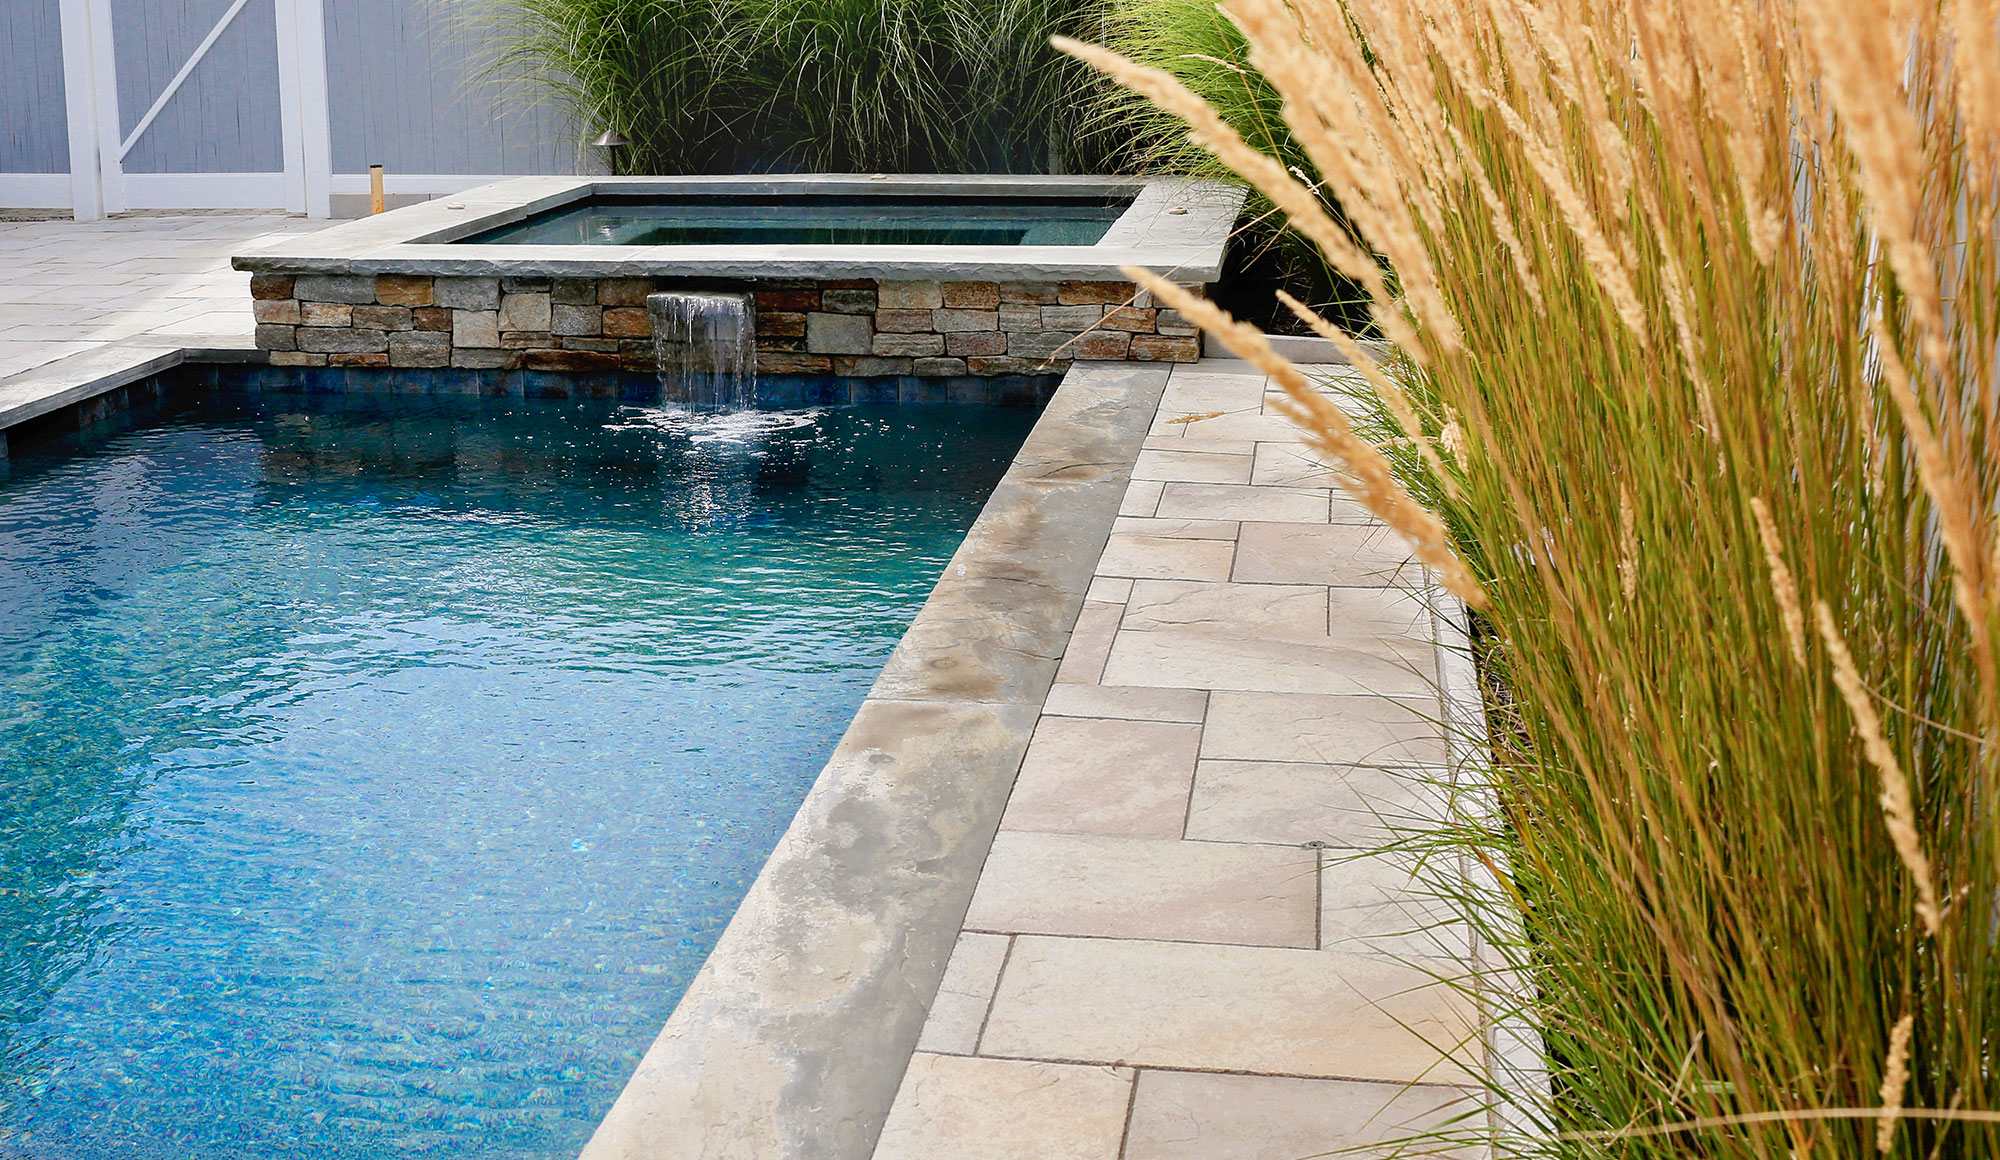 Professional Pools & Spas Design | Hot Tubs, Fountains & More